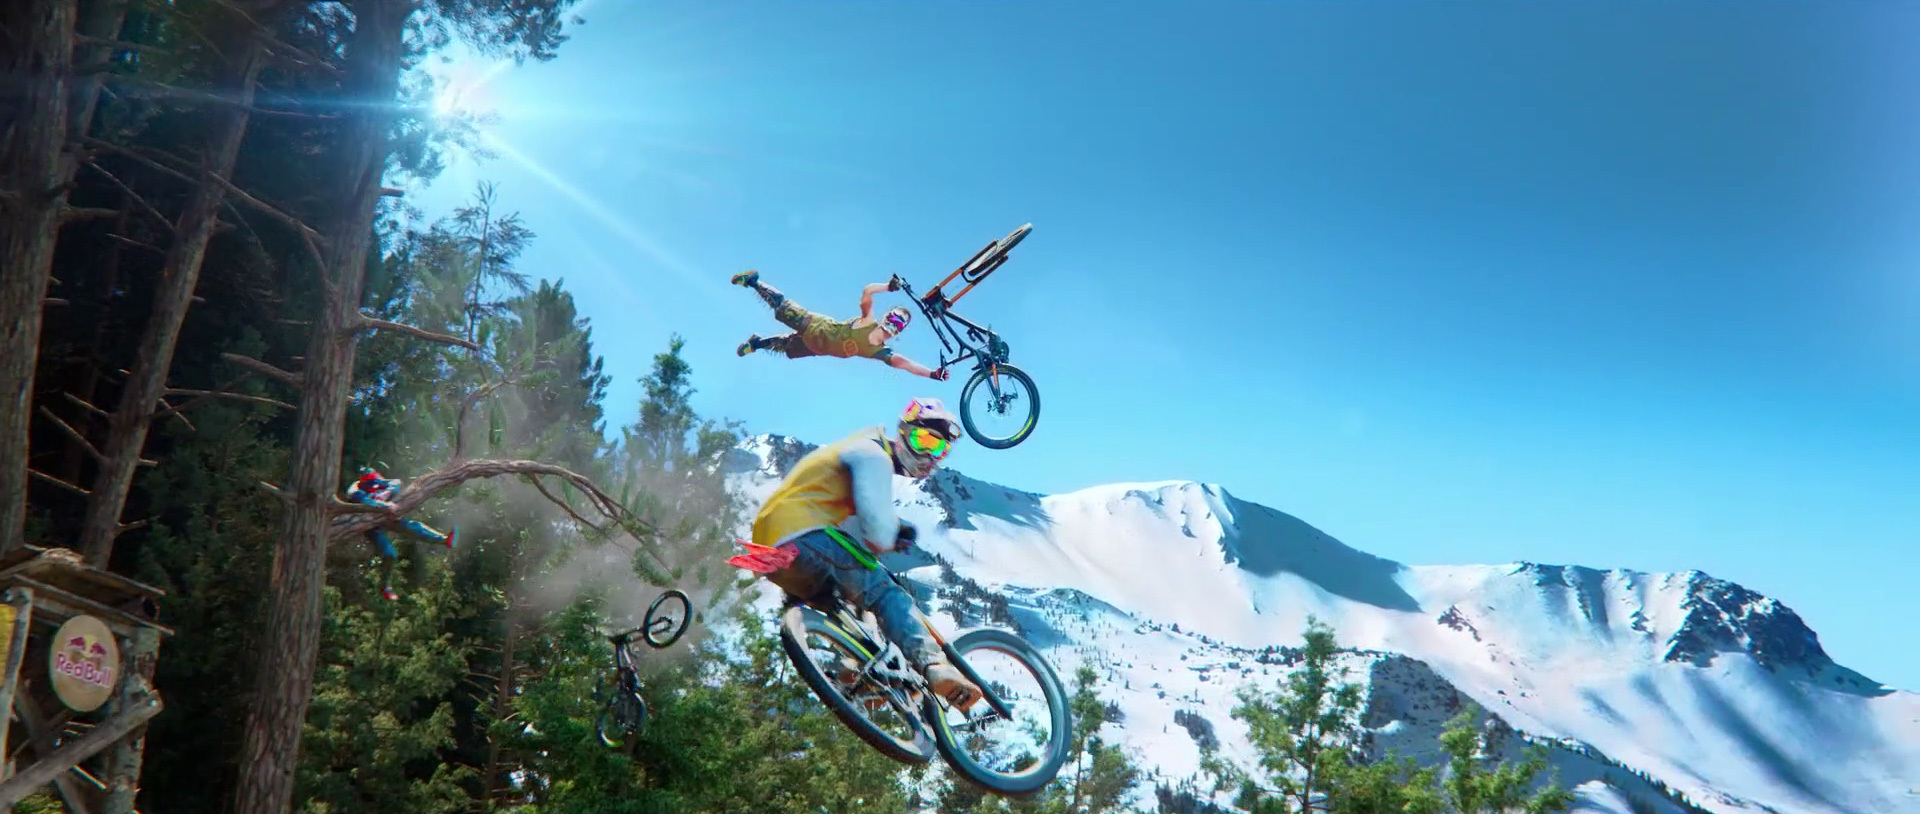 mountain bikers doing tricks off a big jump in Ubisoft's Riders Republic